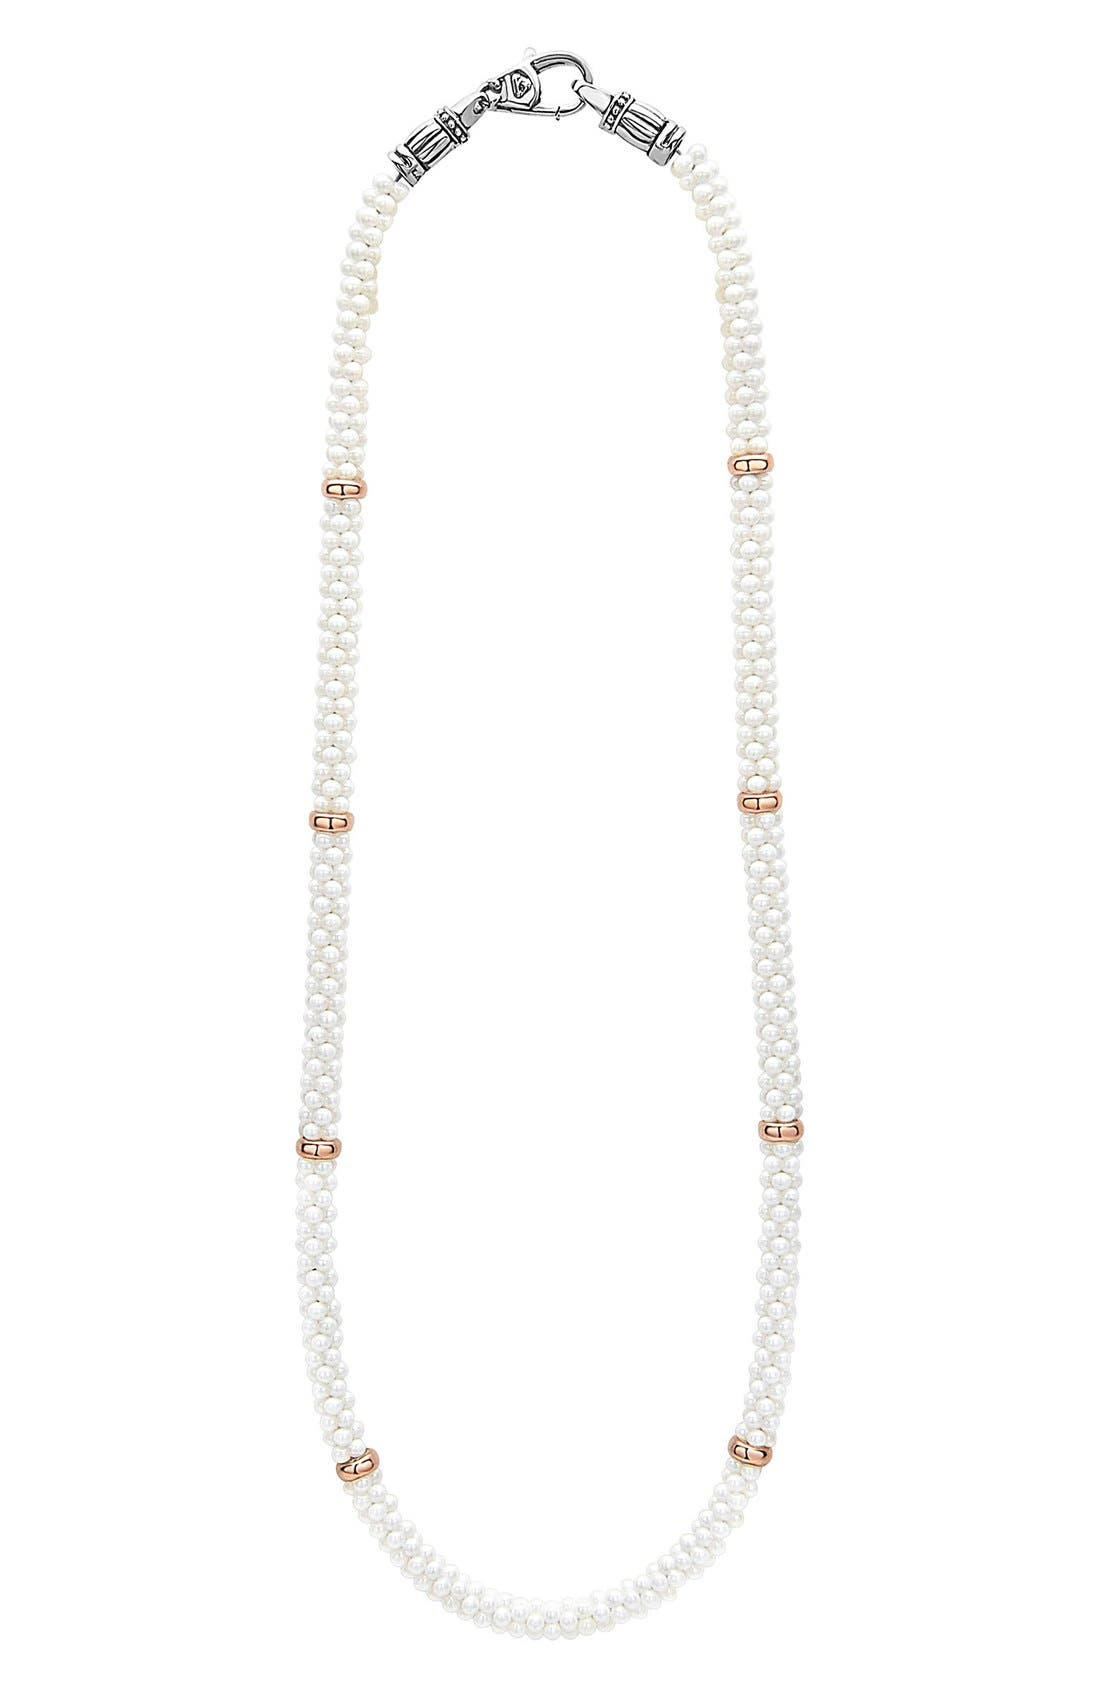 'White Caviar' 5mm Beaded Station Necklace,                         Main,                         color, 100